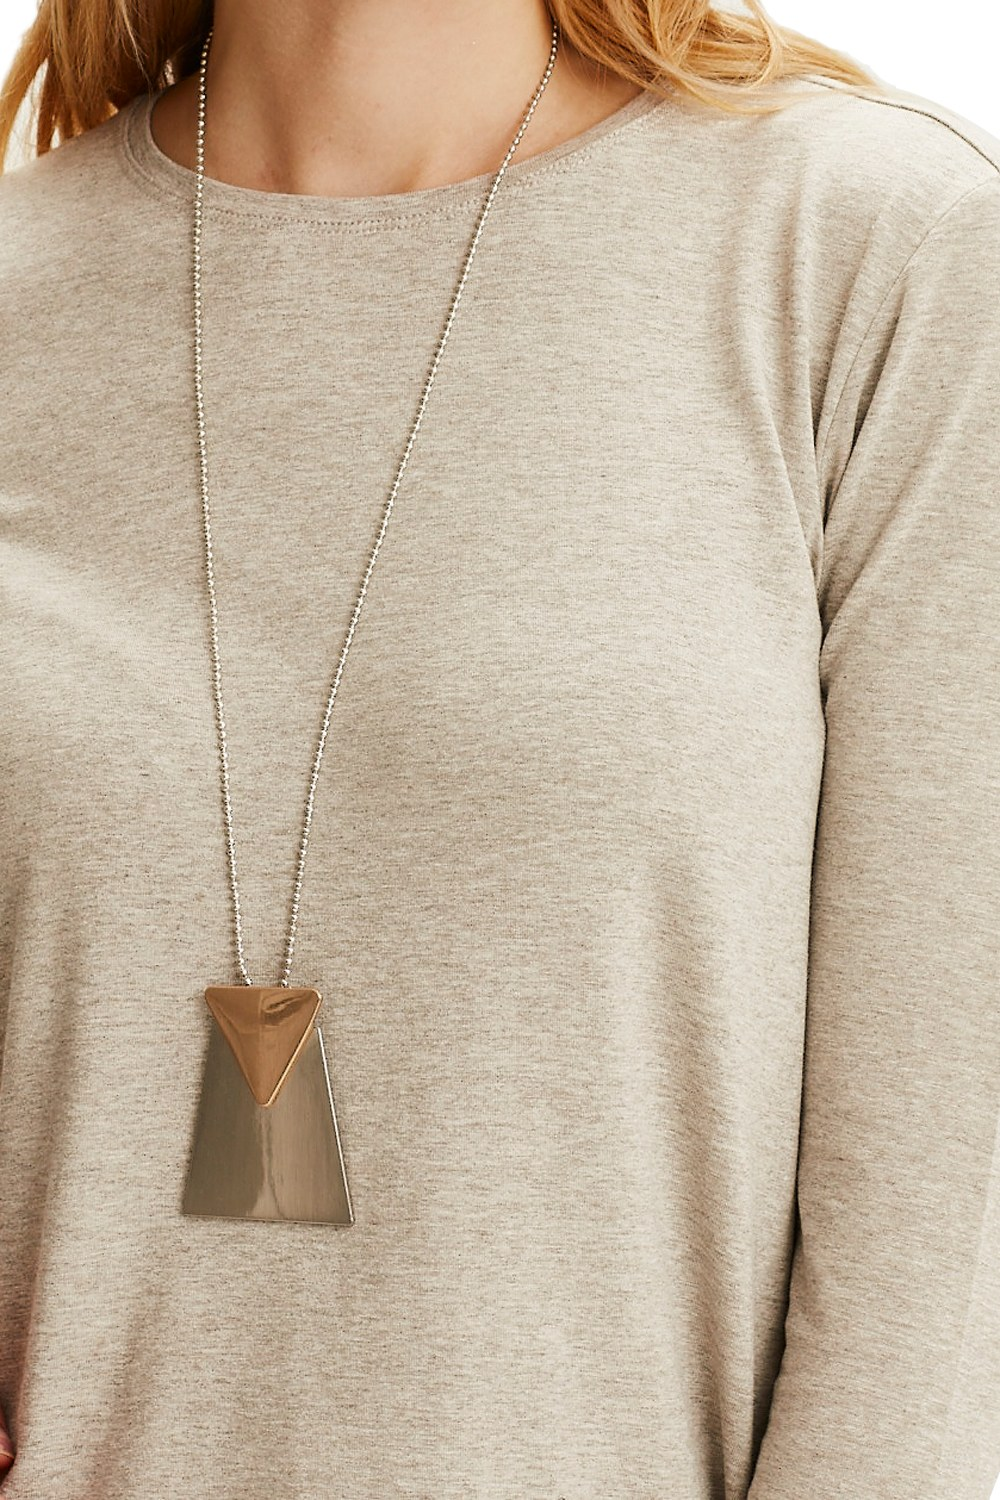 MIZALLE Triangle Detailed Necklace (Silver) (1)